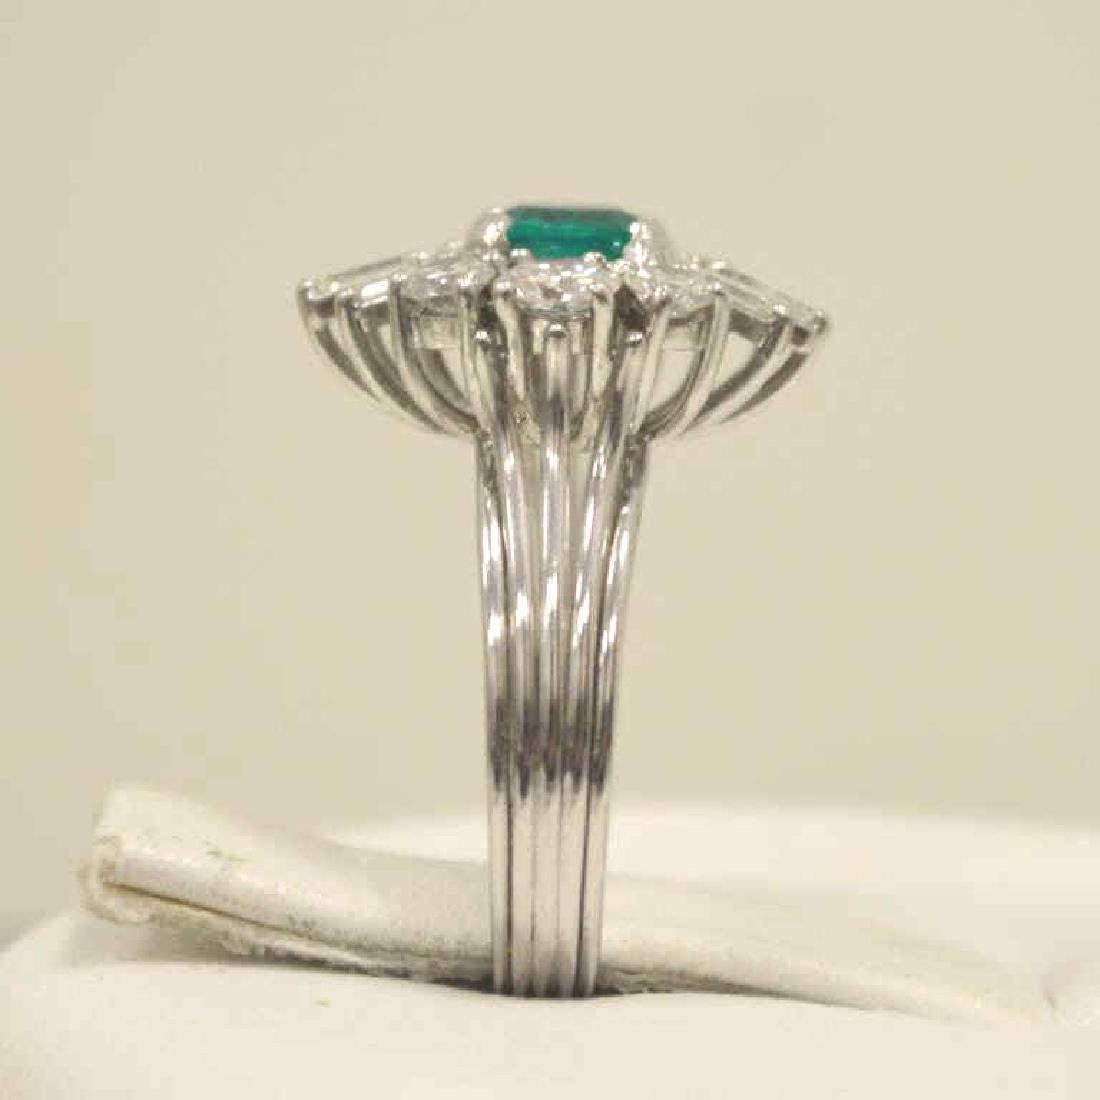 18kt white gold emerald and diamond ring - 4